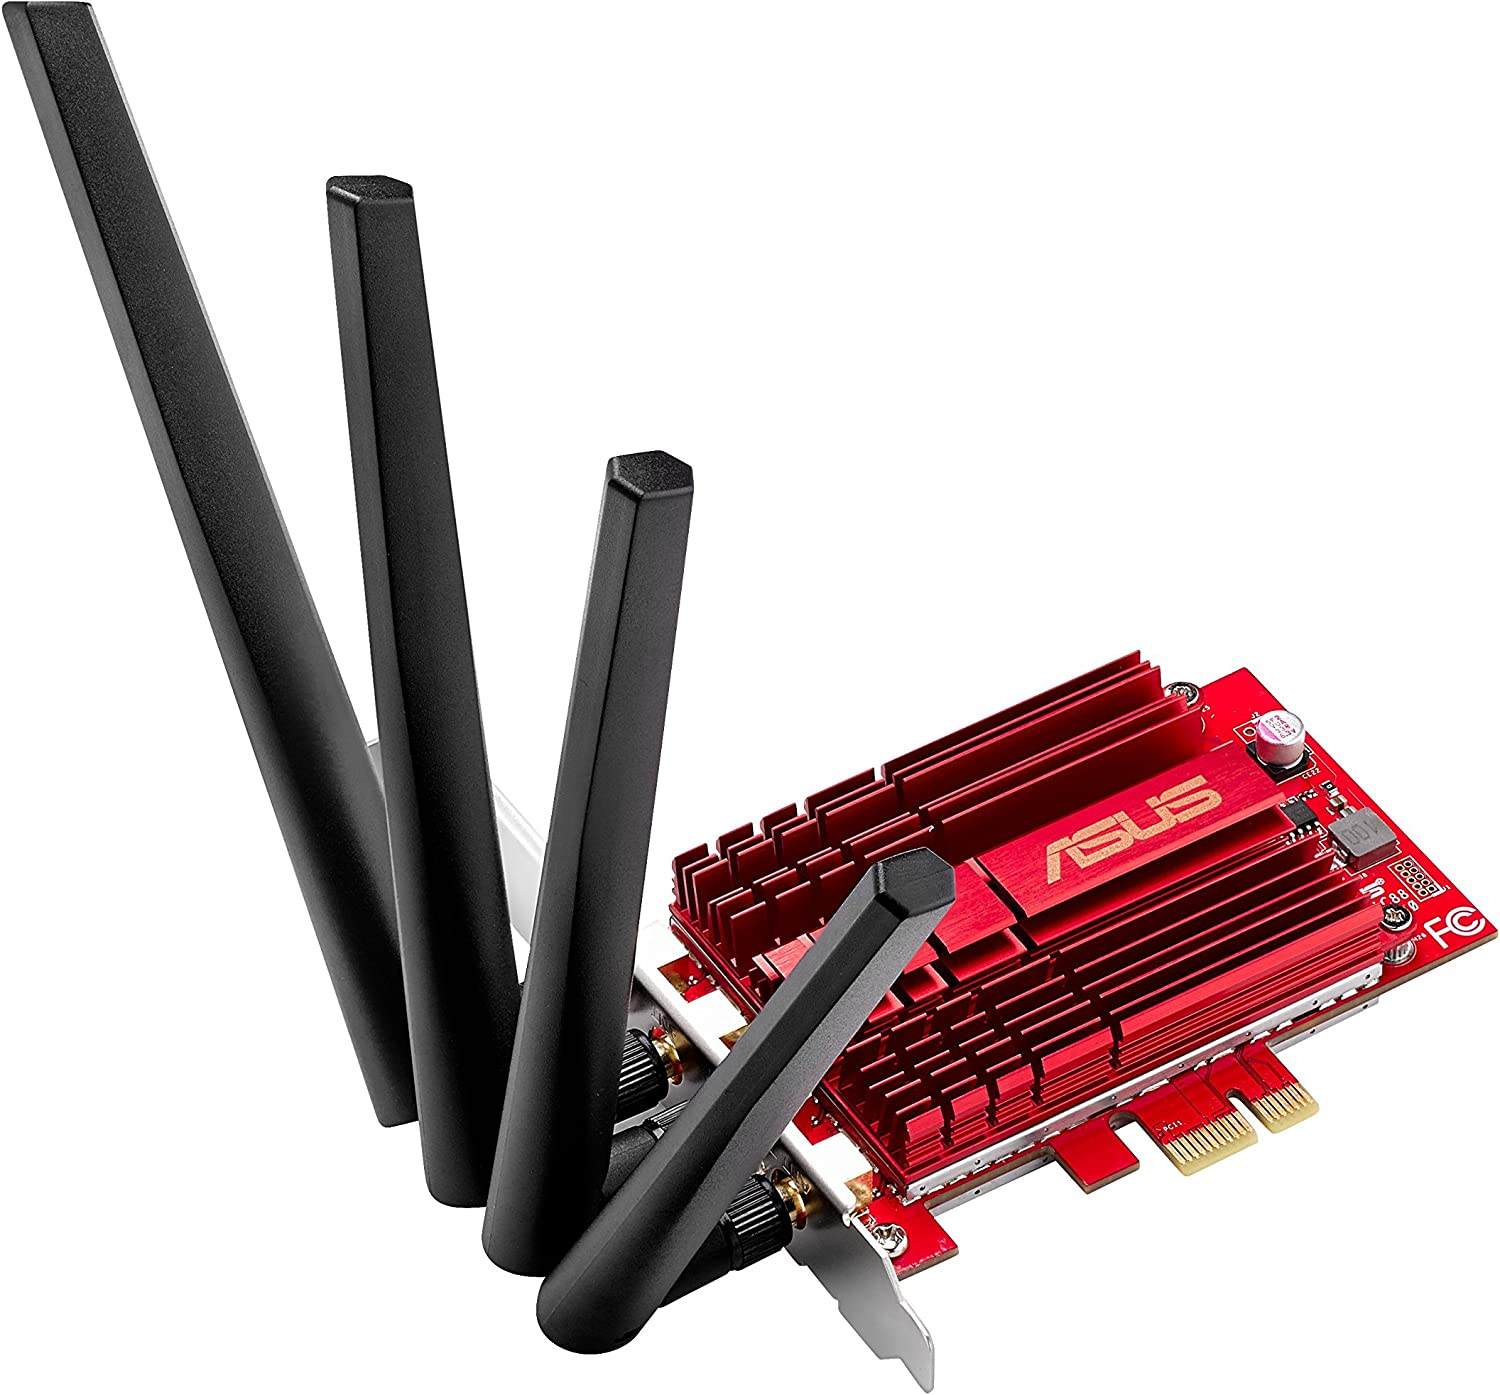 ASUS PCE-AC88 AC3100 4x4 802.11AC PCIe Adapter